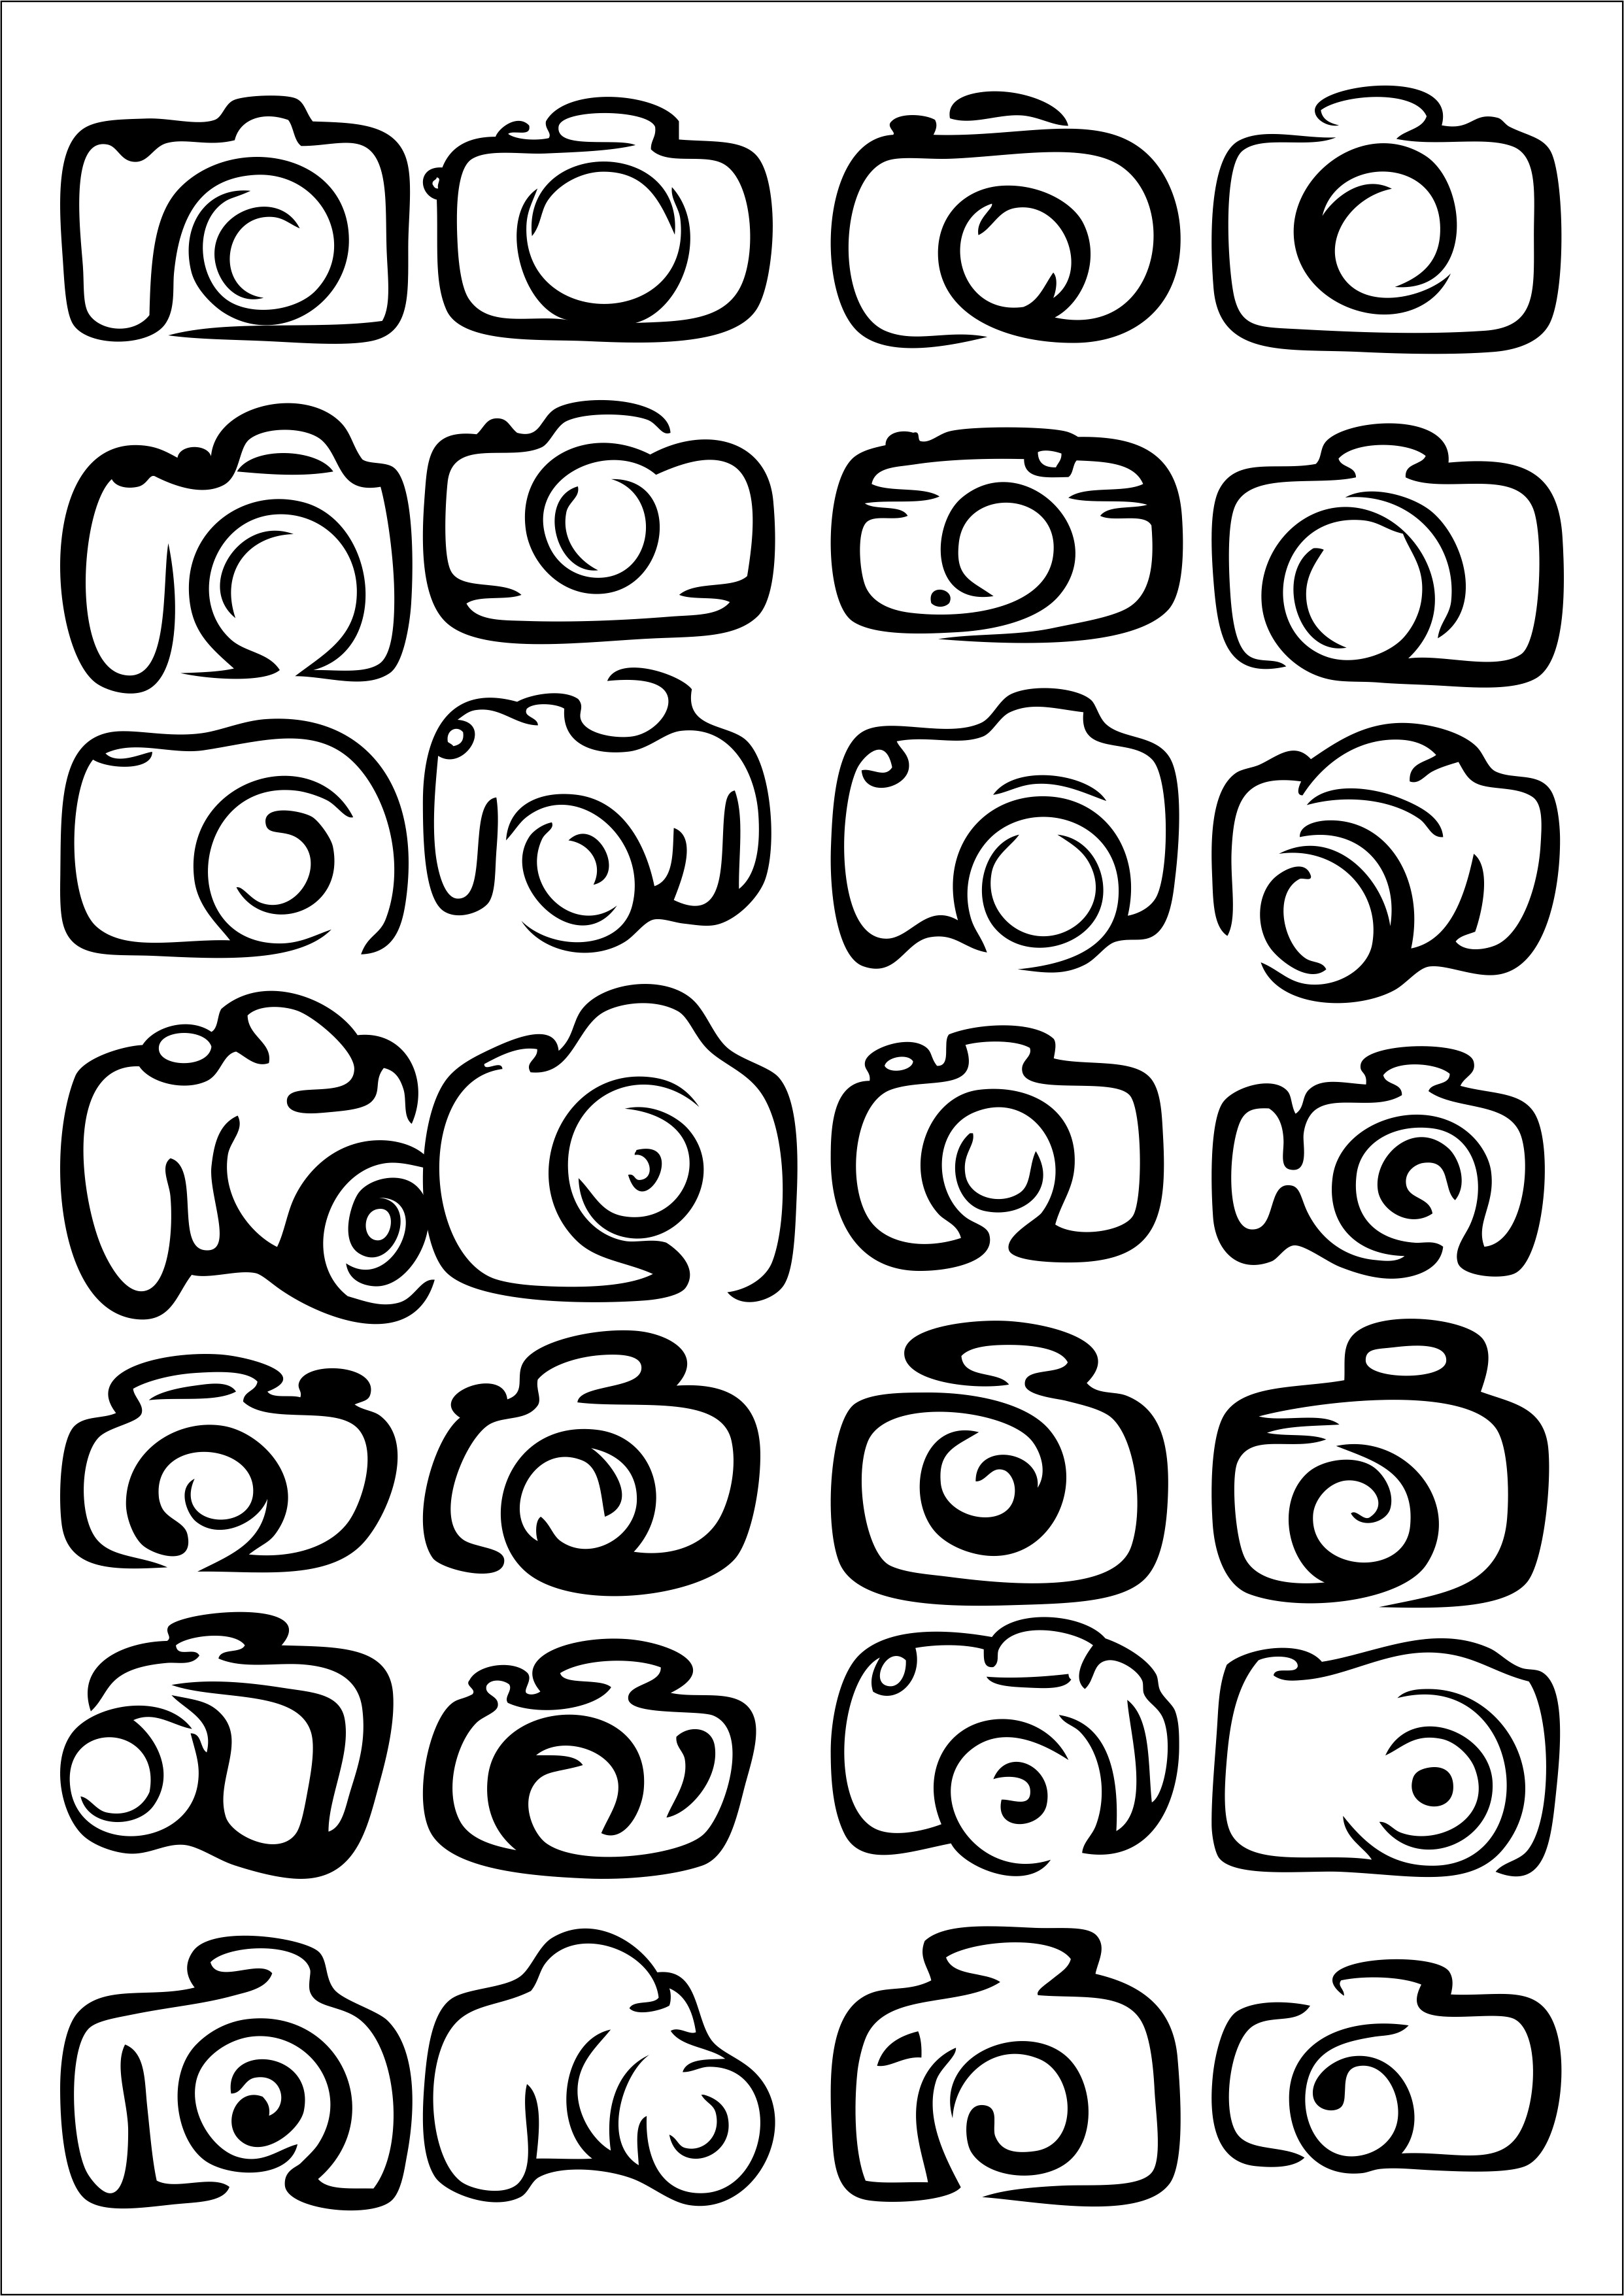 Camera Vector A Large Collection Of Camera Icons Free CDR Vectors Art